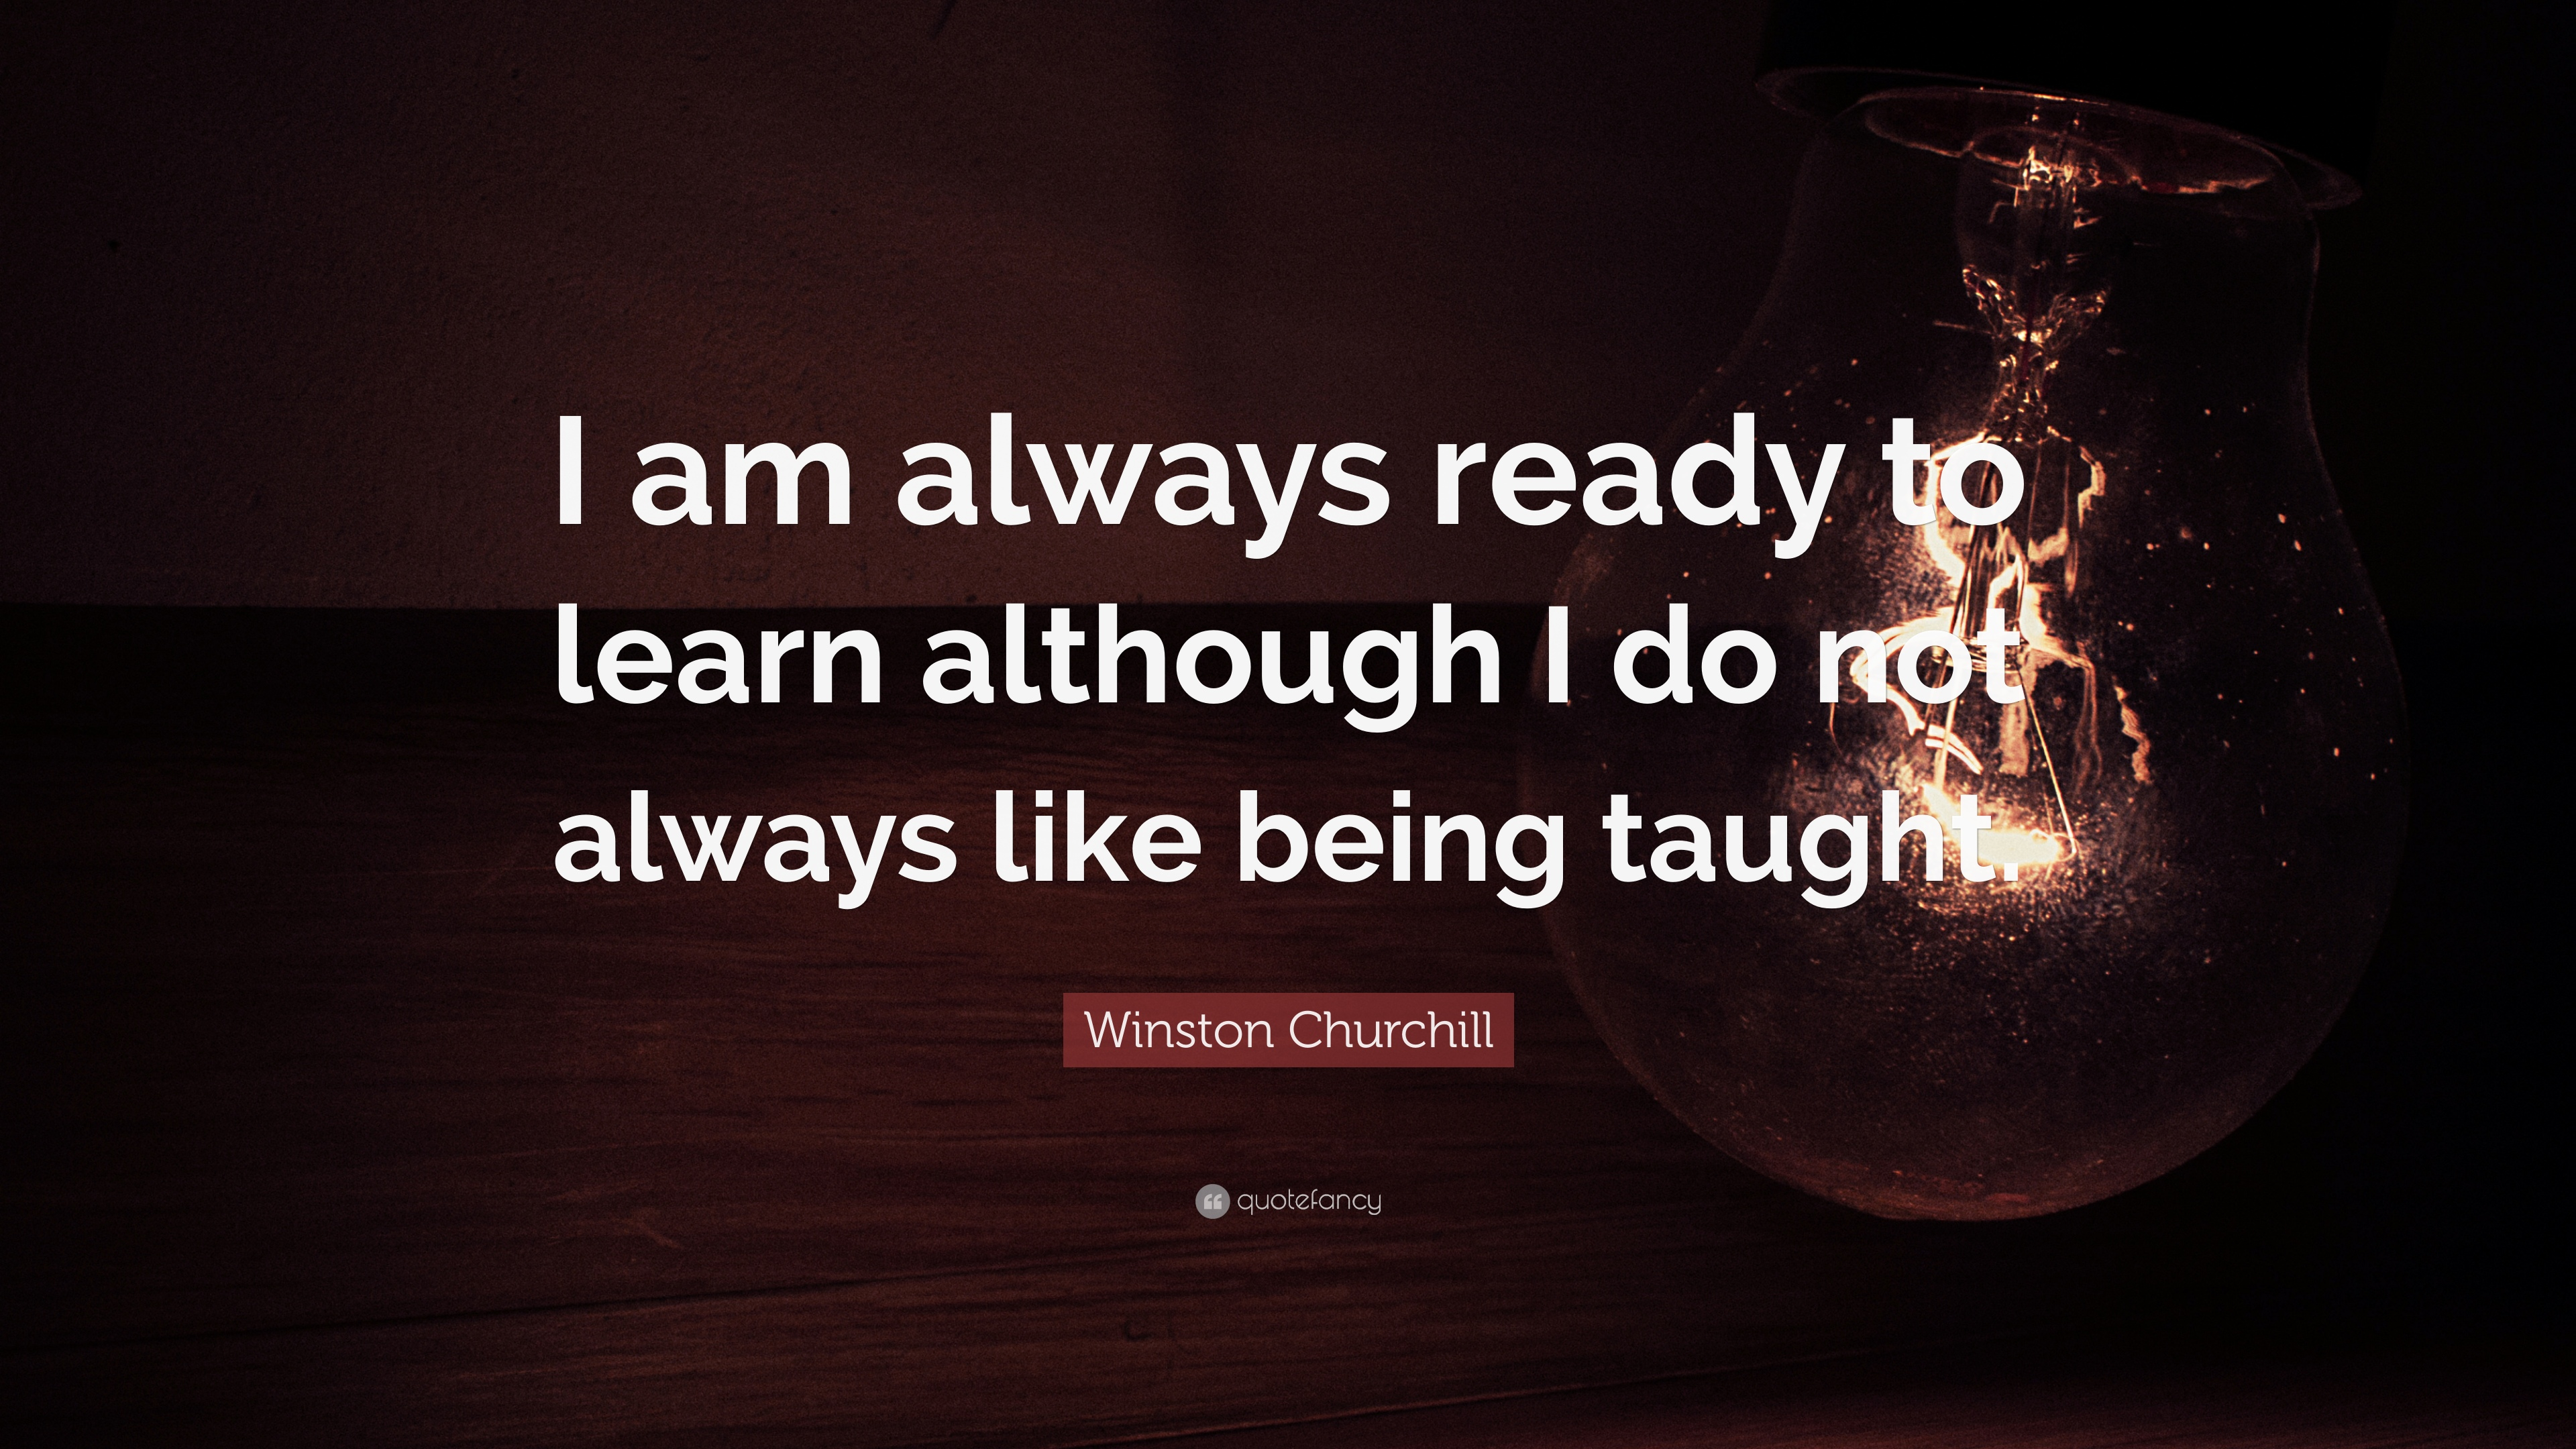 Education And Life Quotes Best Education Quotes 40 Wallpapers  Quotefancy